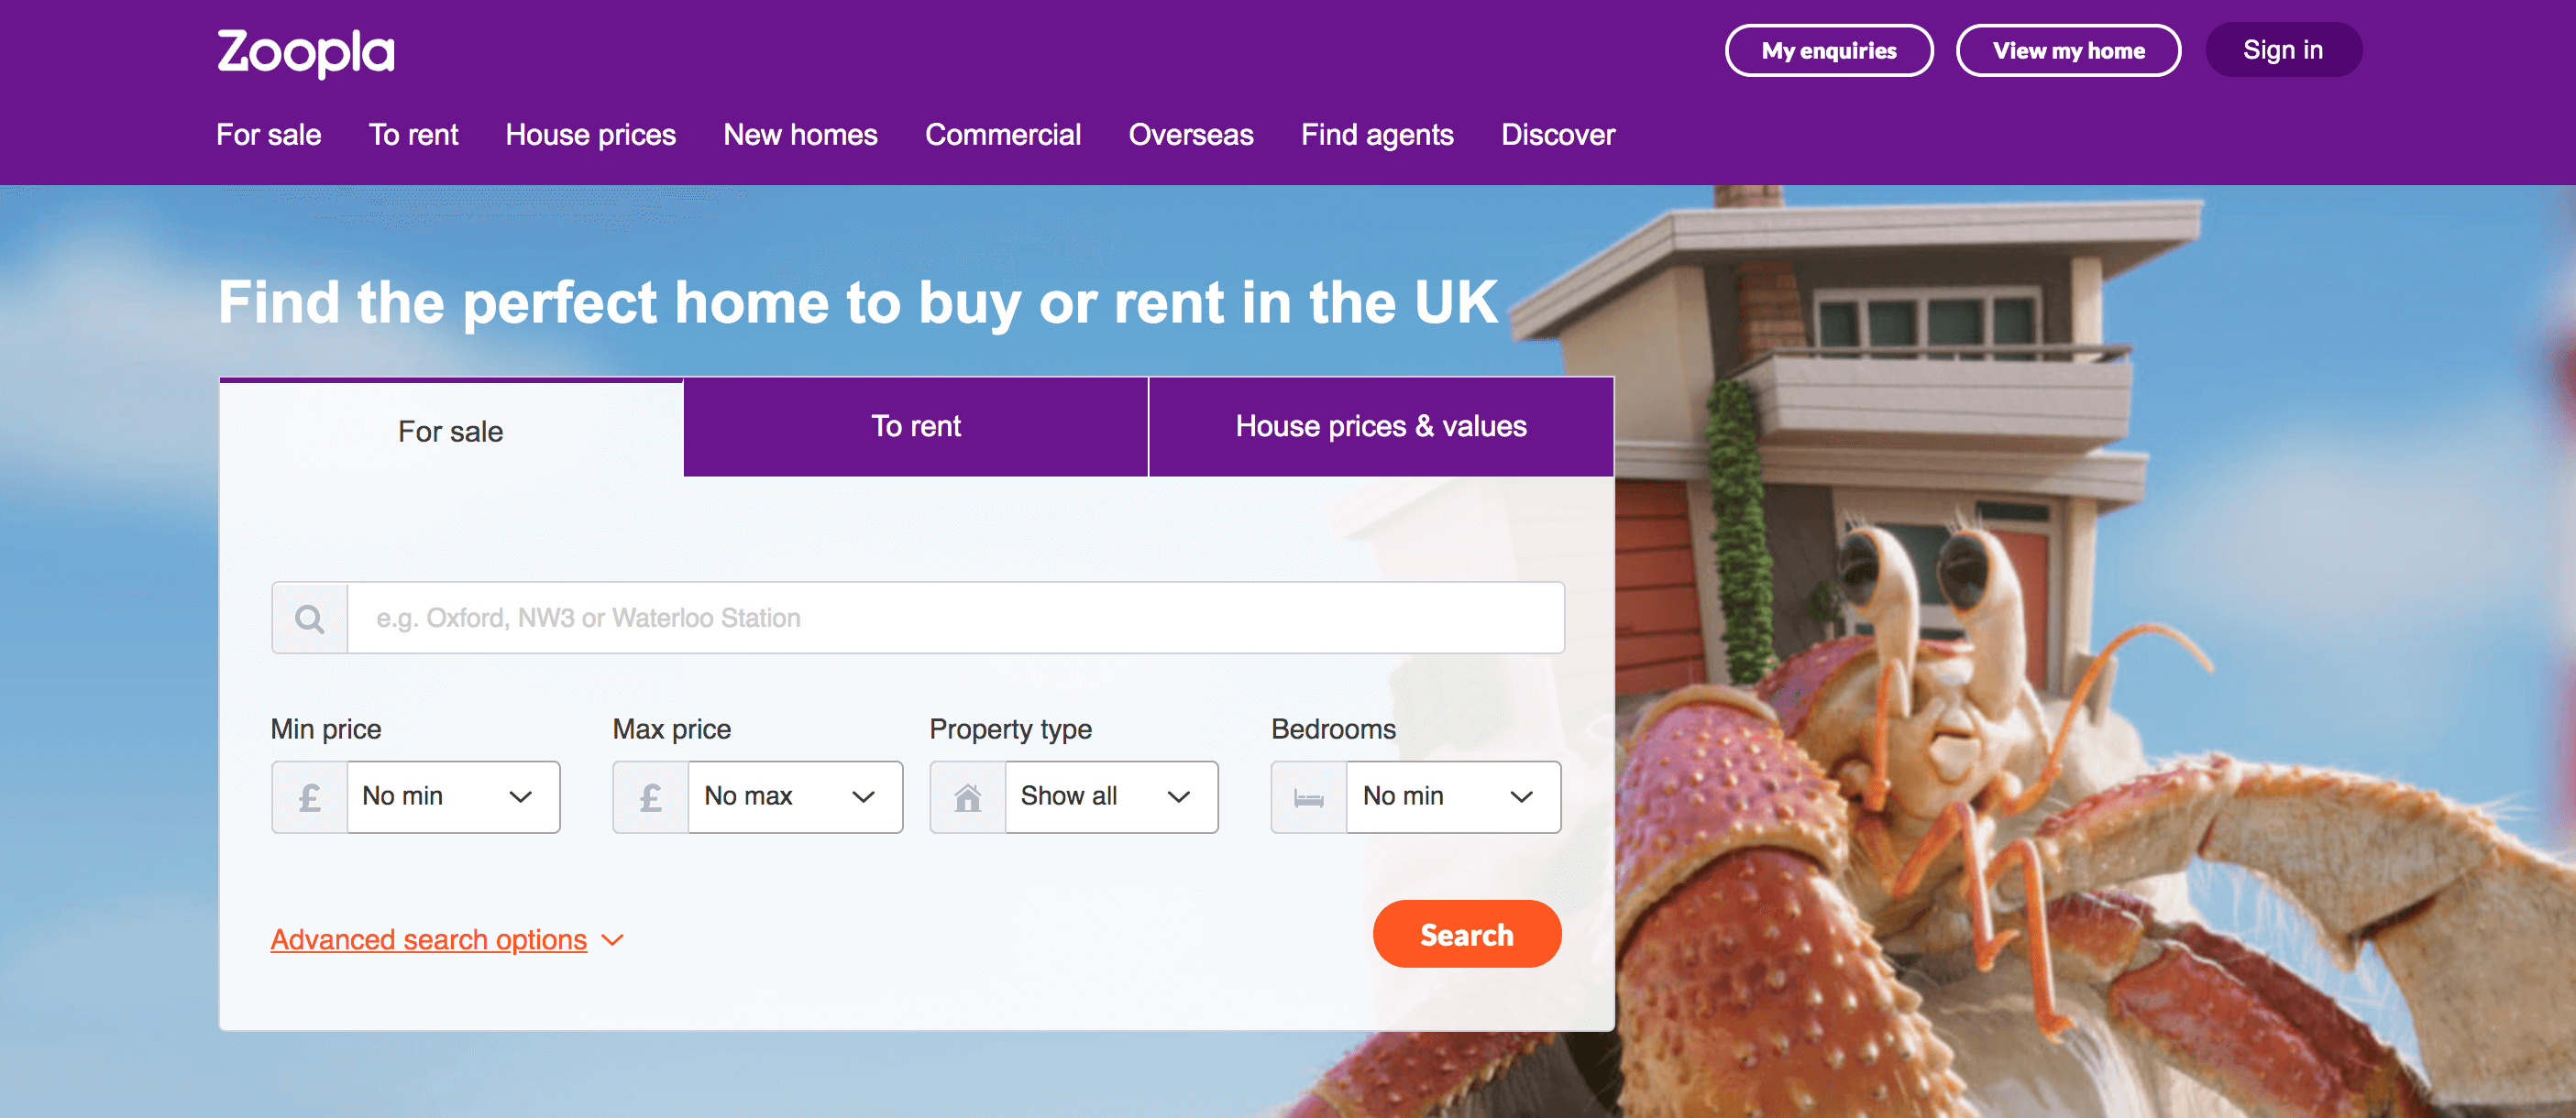 Zoopla homepage.